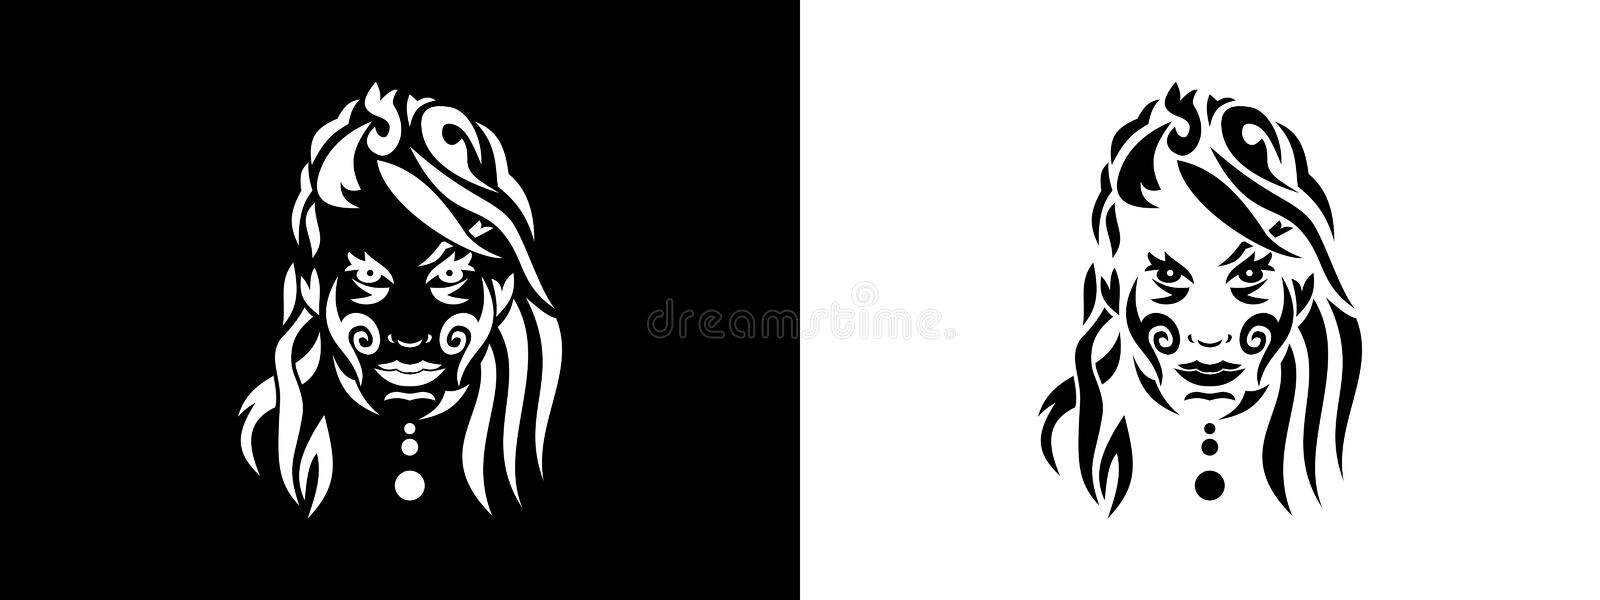 Tribal woman portrait, Woman portait in tribal style illustration in black and white vector illustration